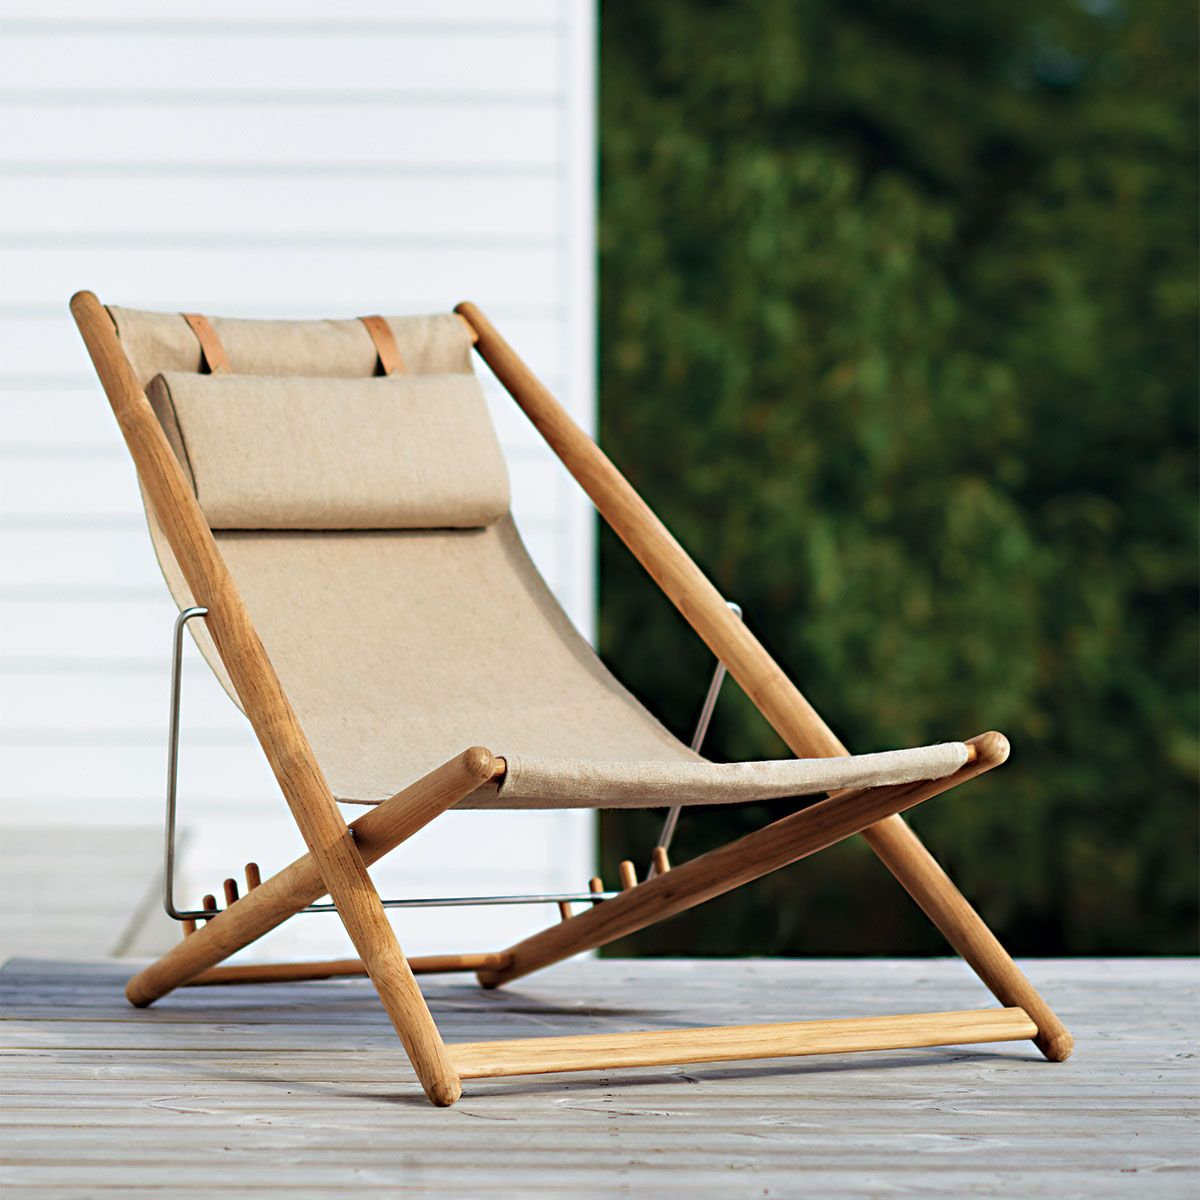 Teak Adjustable Outdoor Sling Chair in Natural Ihland Collection